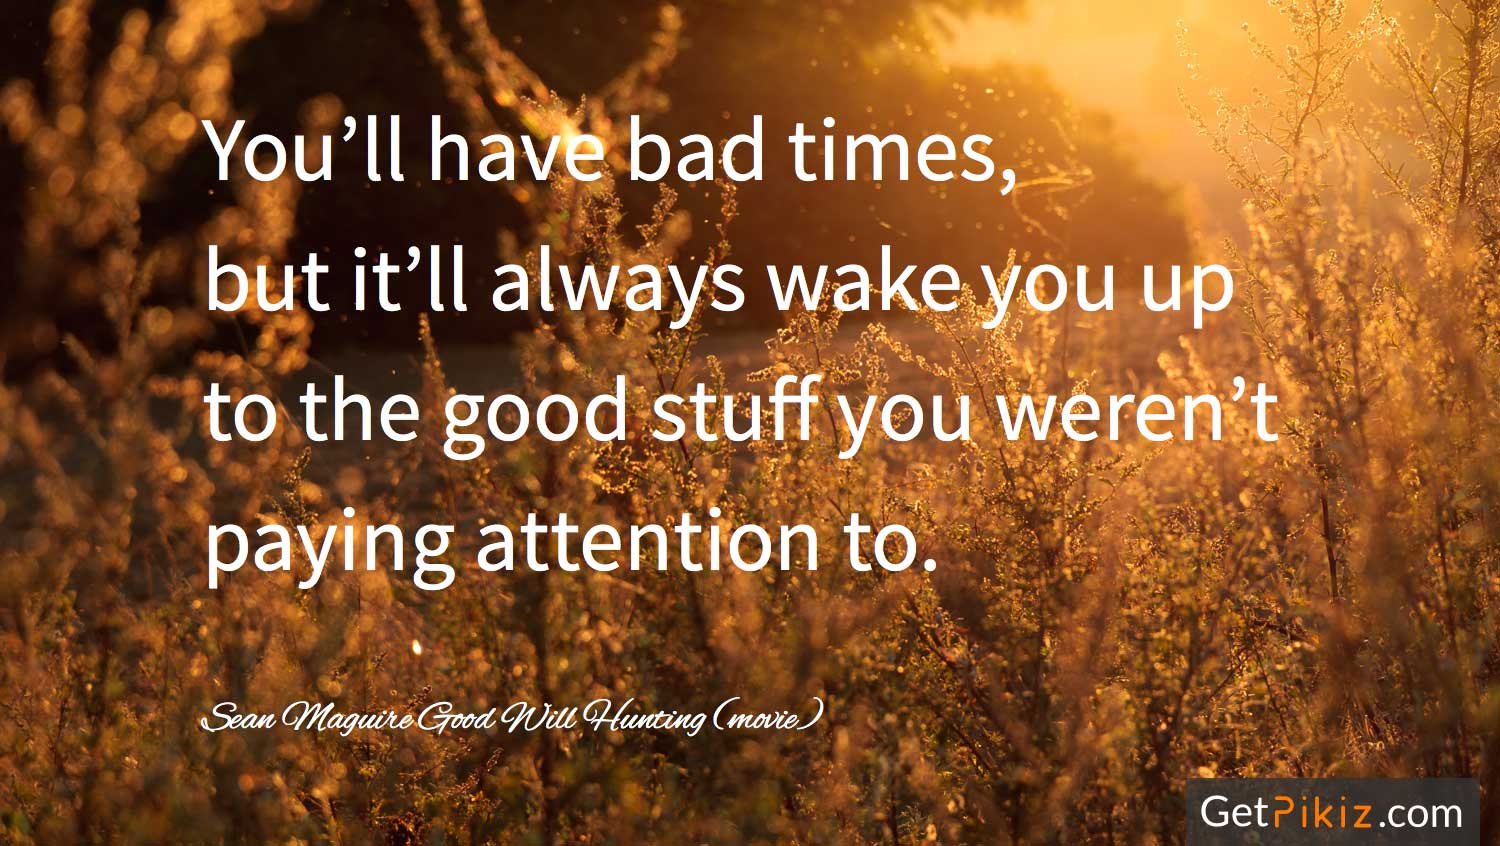 You'll have bad times, but it'll always wake you up to the good stuff you weren't paying attention to.- sean Maguire. Good Will Hunting (movie)